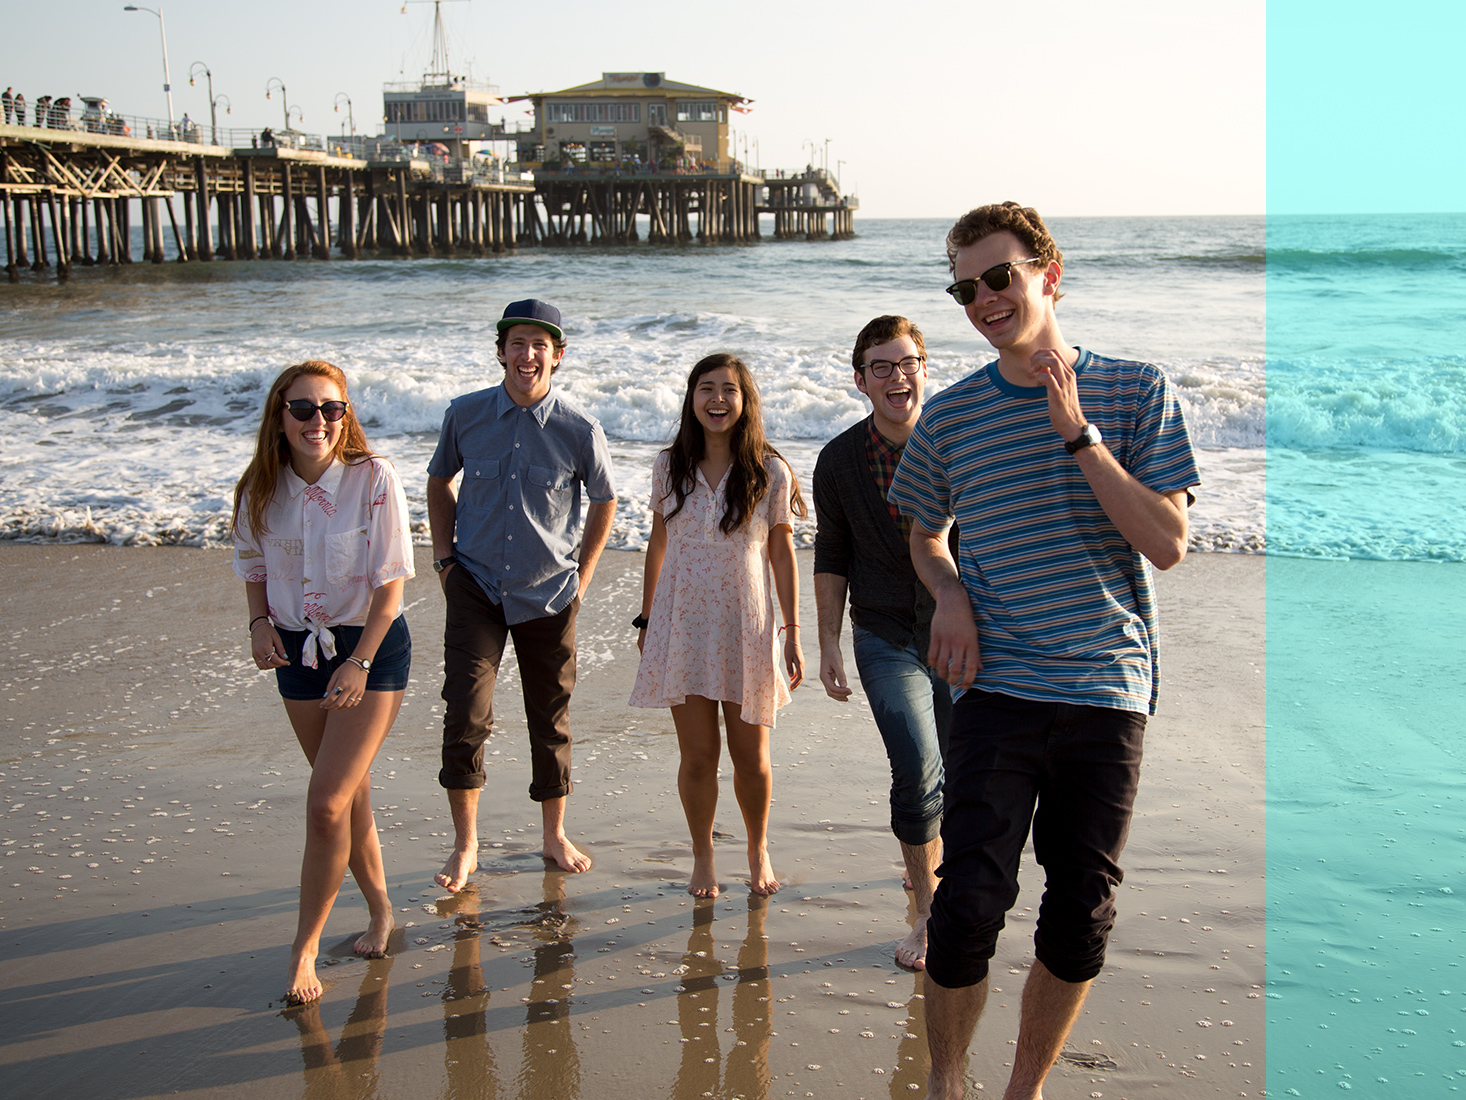 A group of students goof around on the beach near the pier.